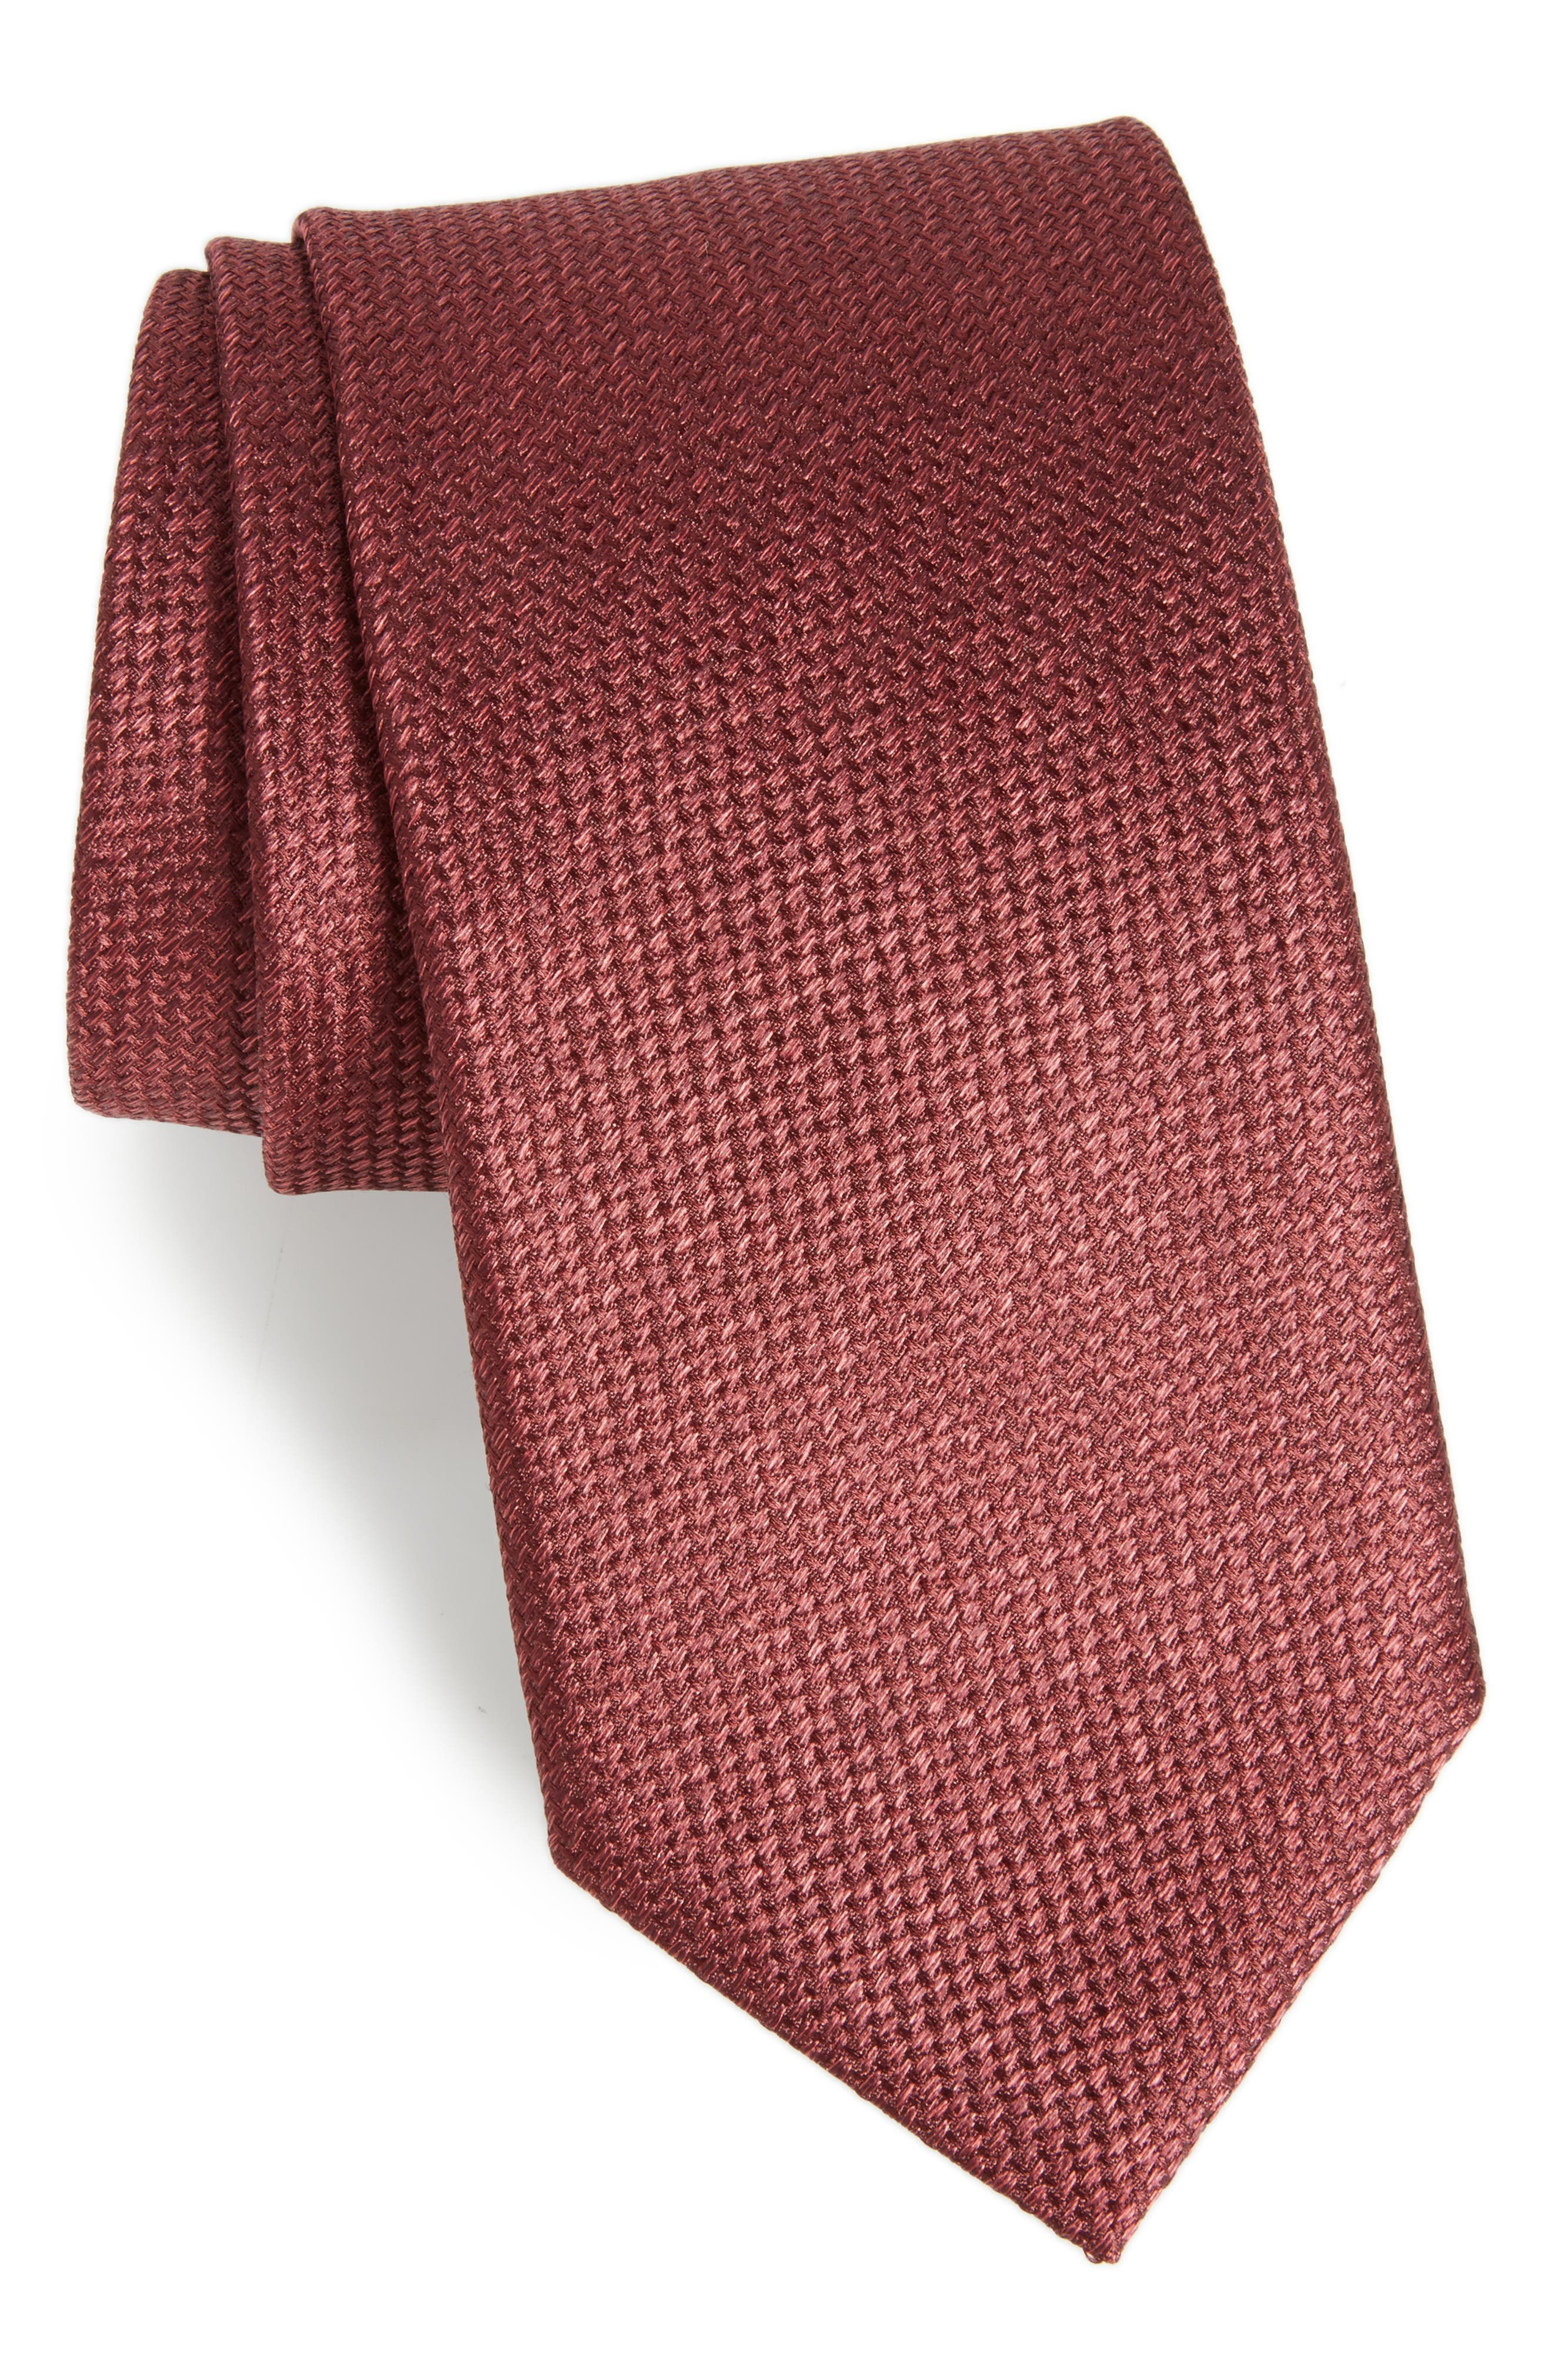 Solid Silk Tie,                             Main thumbnail 1, color,                             601